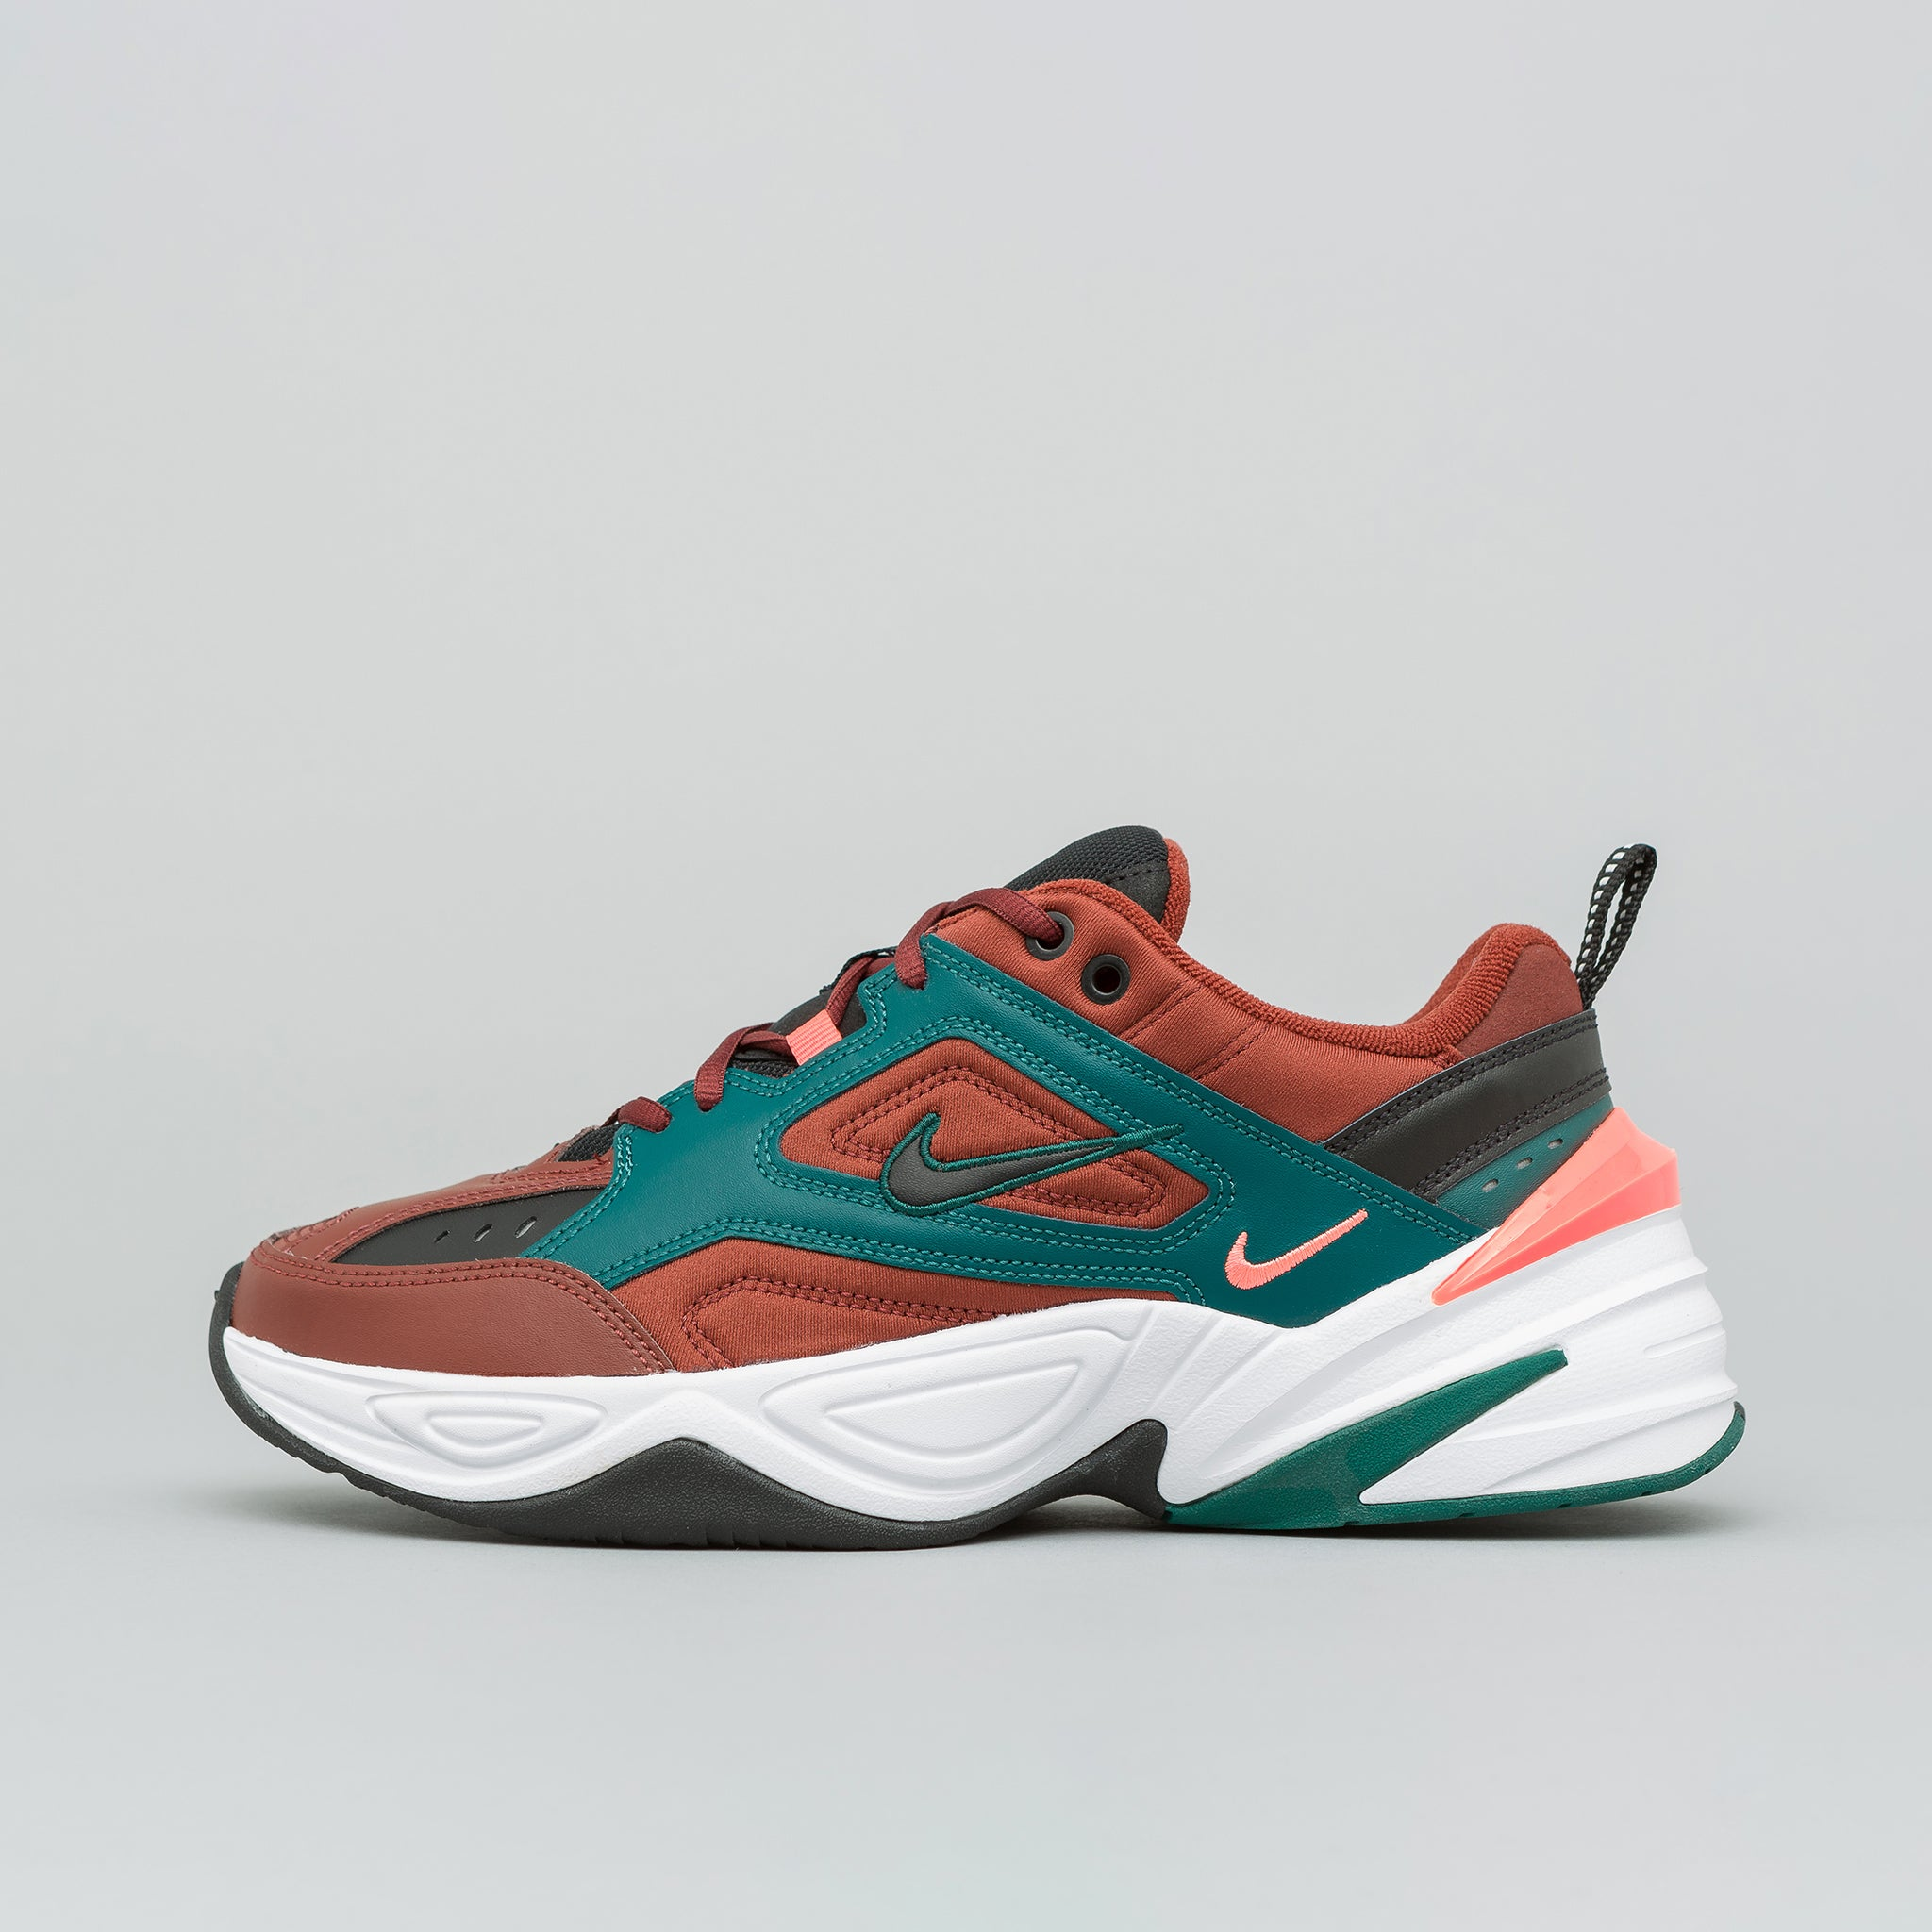 M2K Tekno in Pueblo Brown/Rainforest